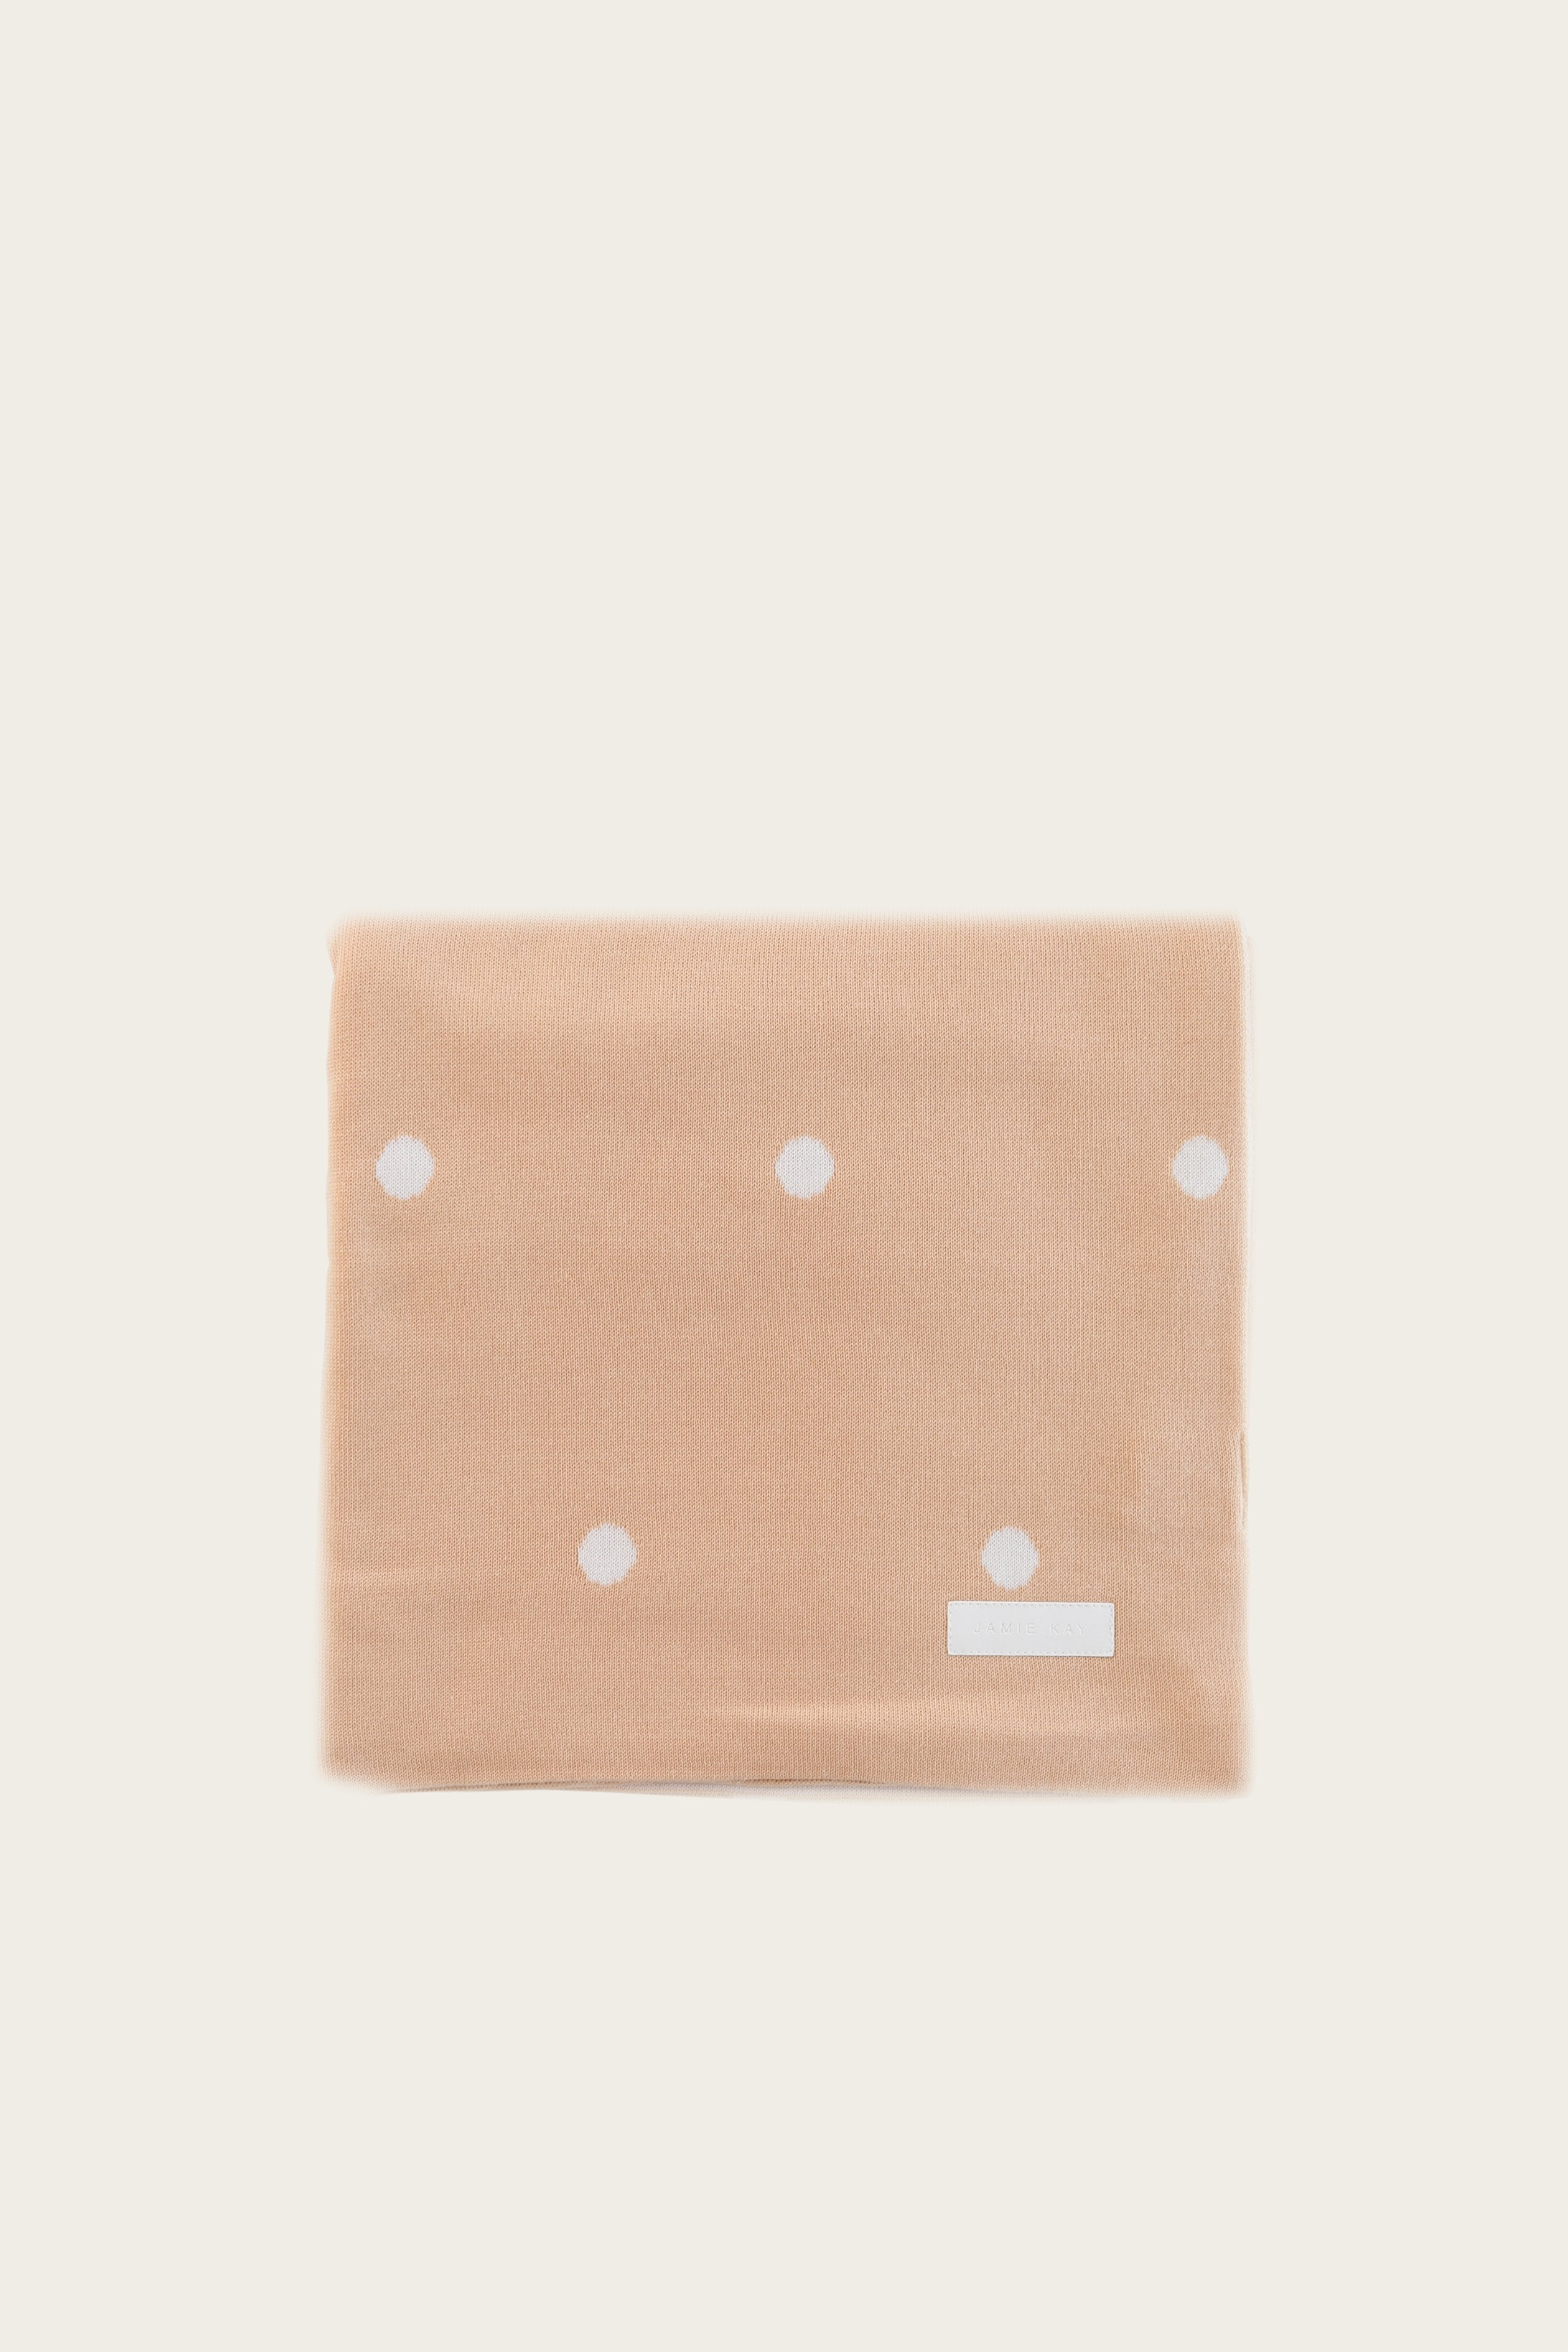 Polka Dot Cot Blanket - Honey Peach